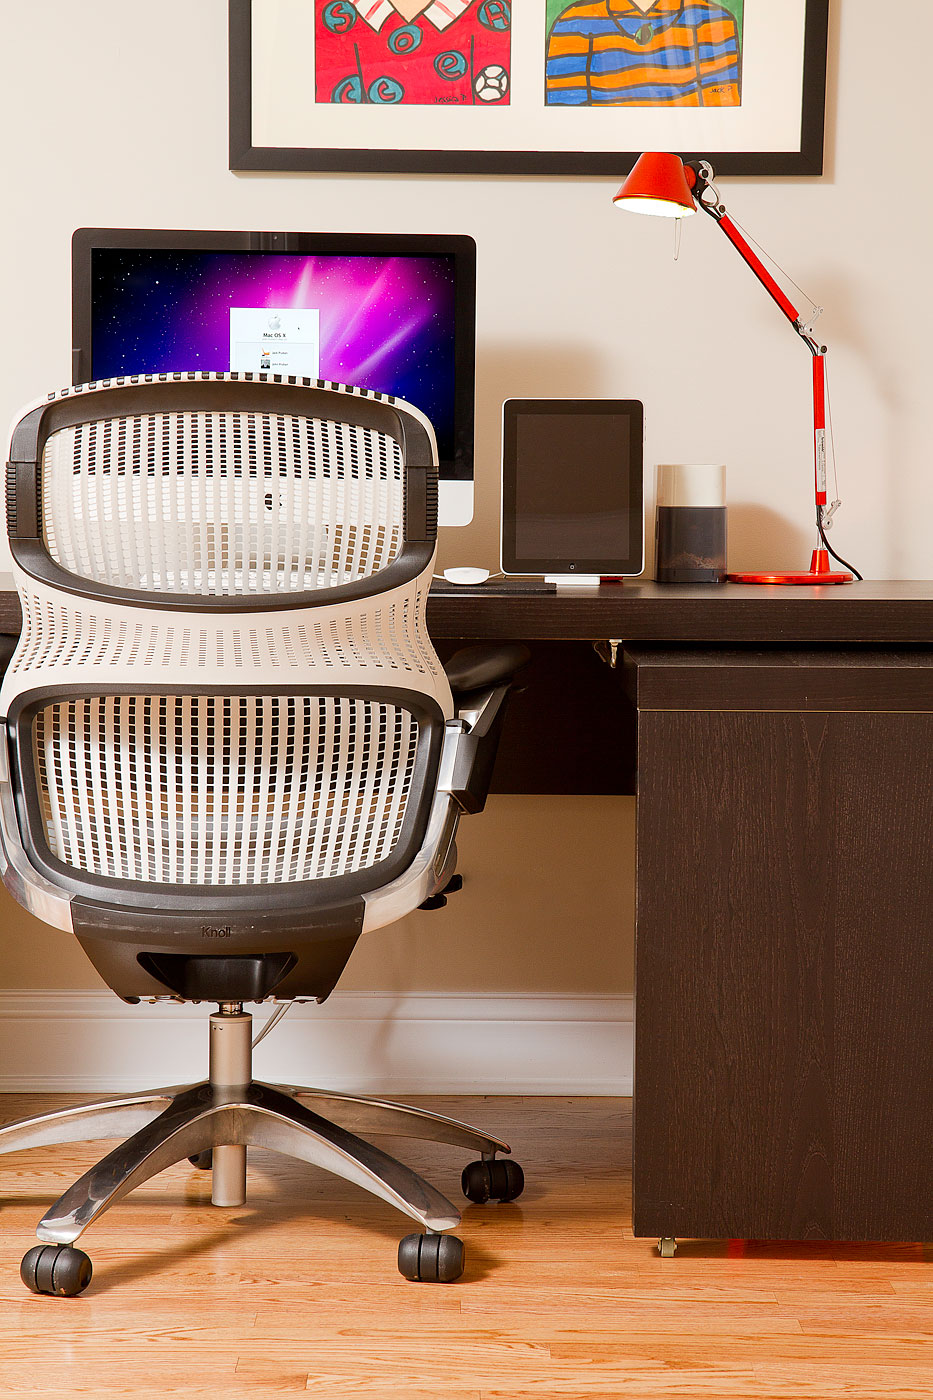 office-chair-and-desk-018-Edit.jpg